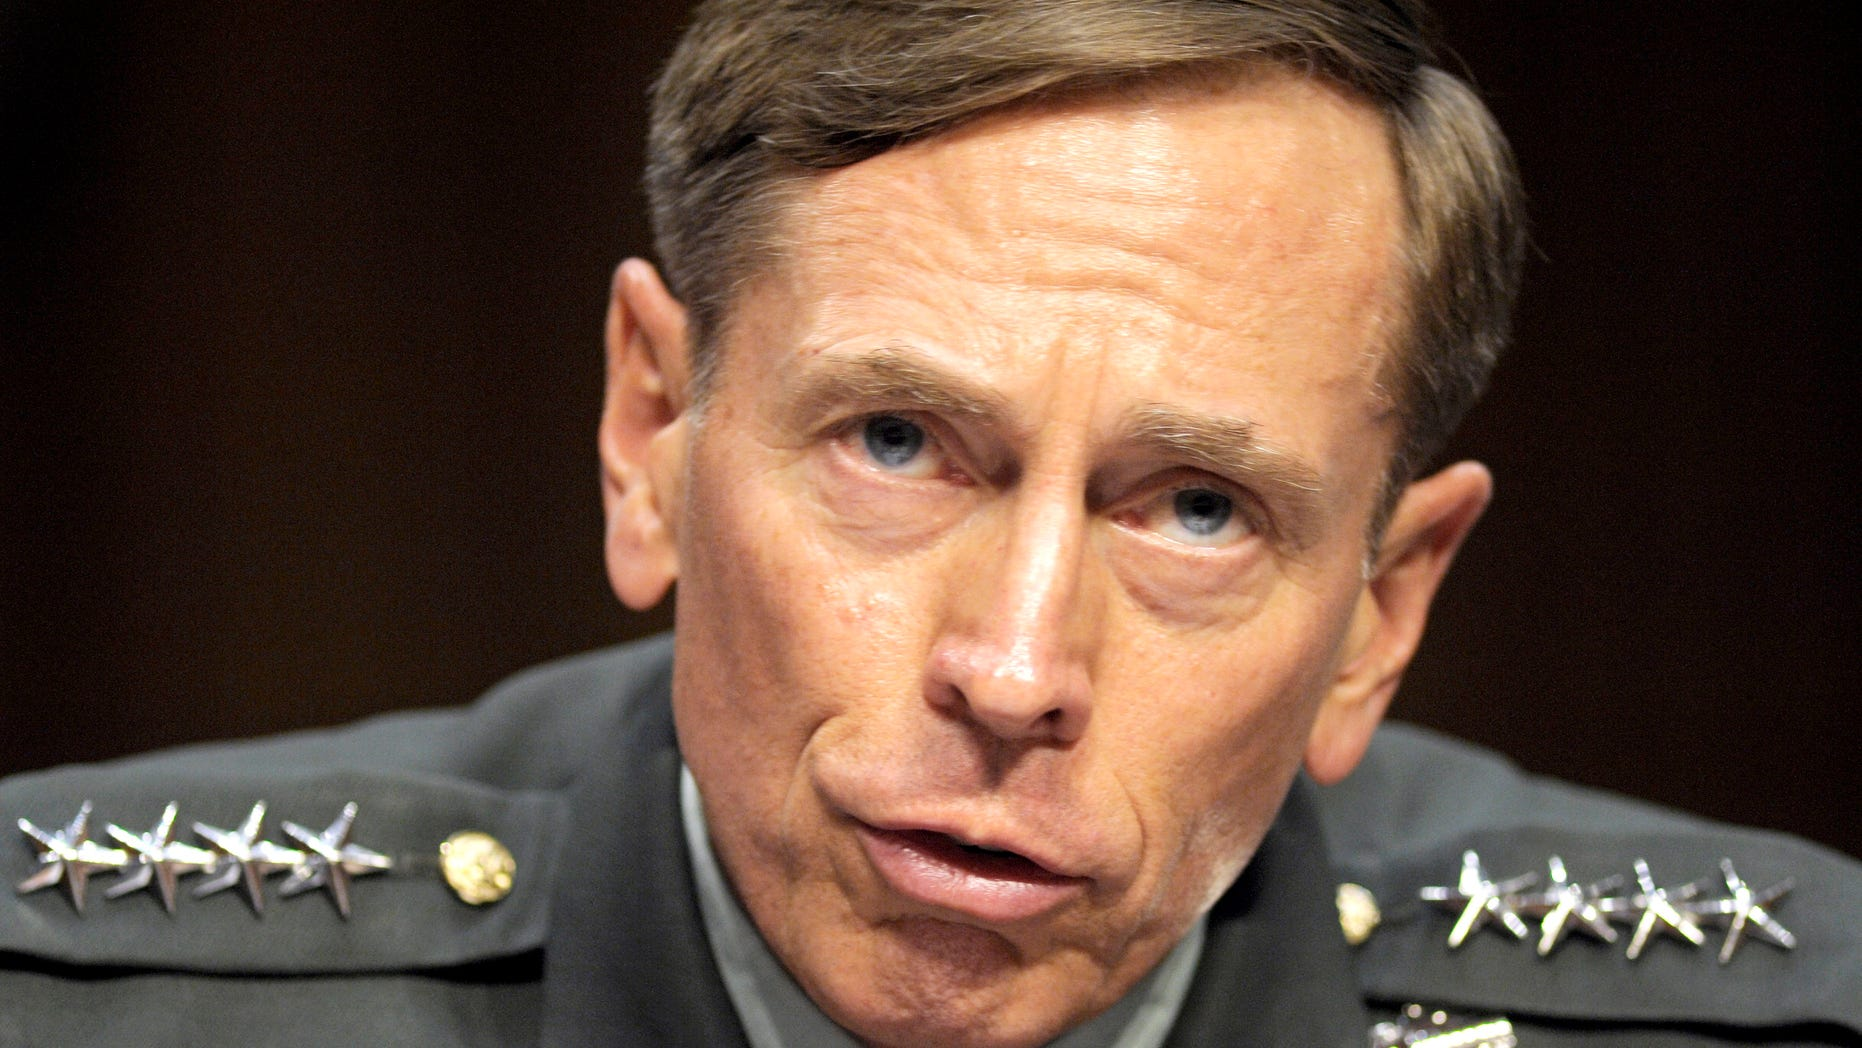 The Senate has voted to confirm Gen. David Petraeus to be the nation's CIA director who is seen here testifying on Capitol Hill, June 23,2011. (AP)